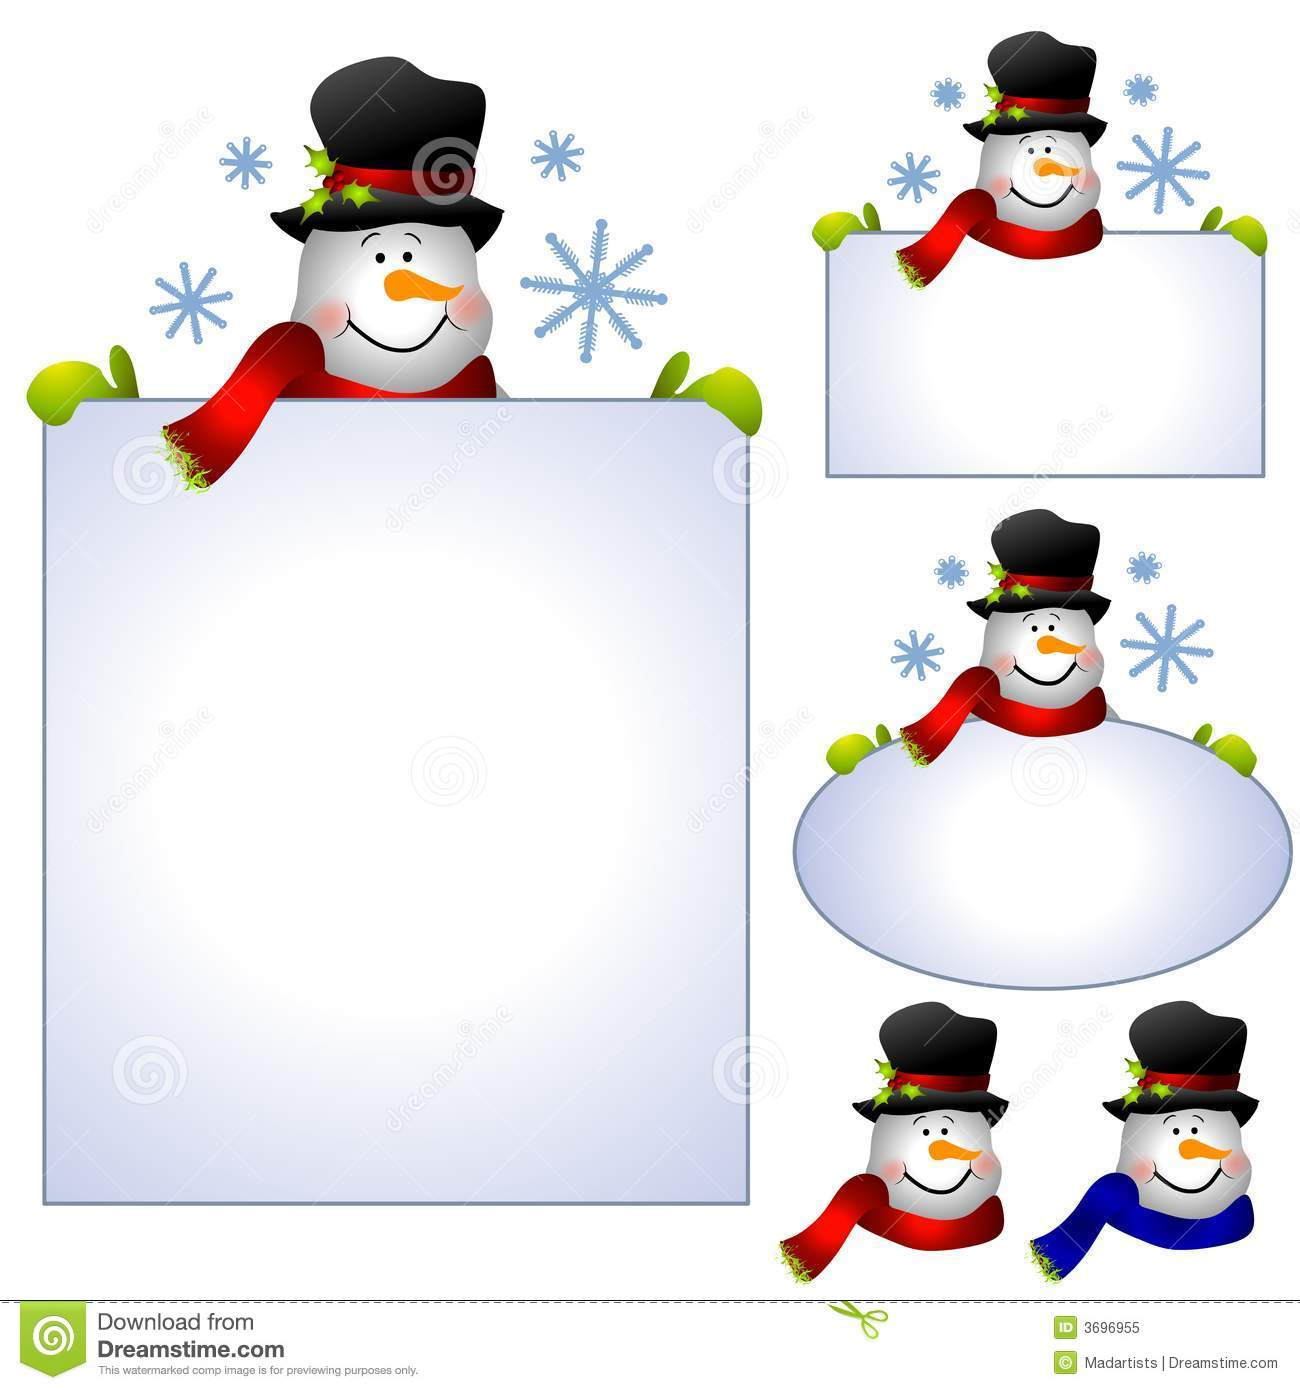 Free stock images clipart image black and white stock Snowman Clip Art Isolated Royalty Free Stock Photo - Image: 7049645 image black and white stock